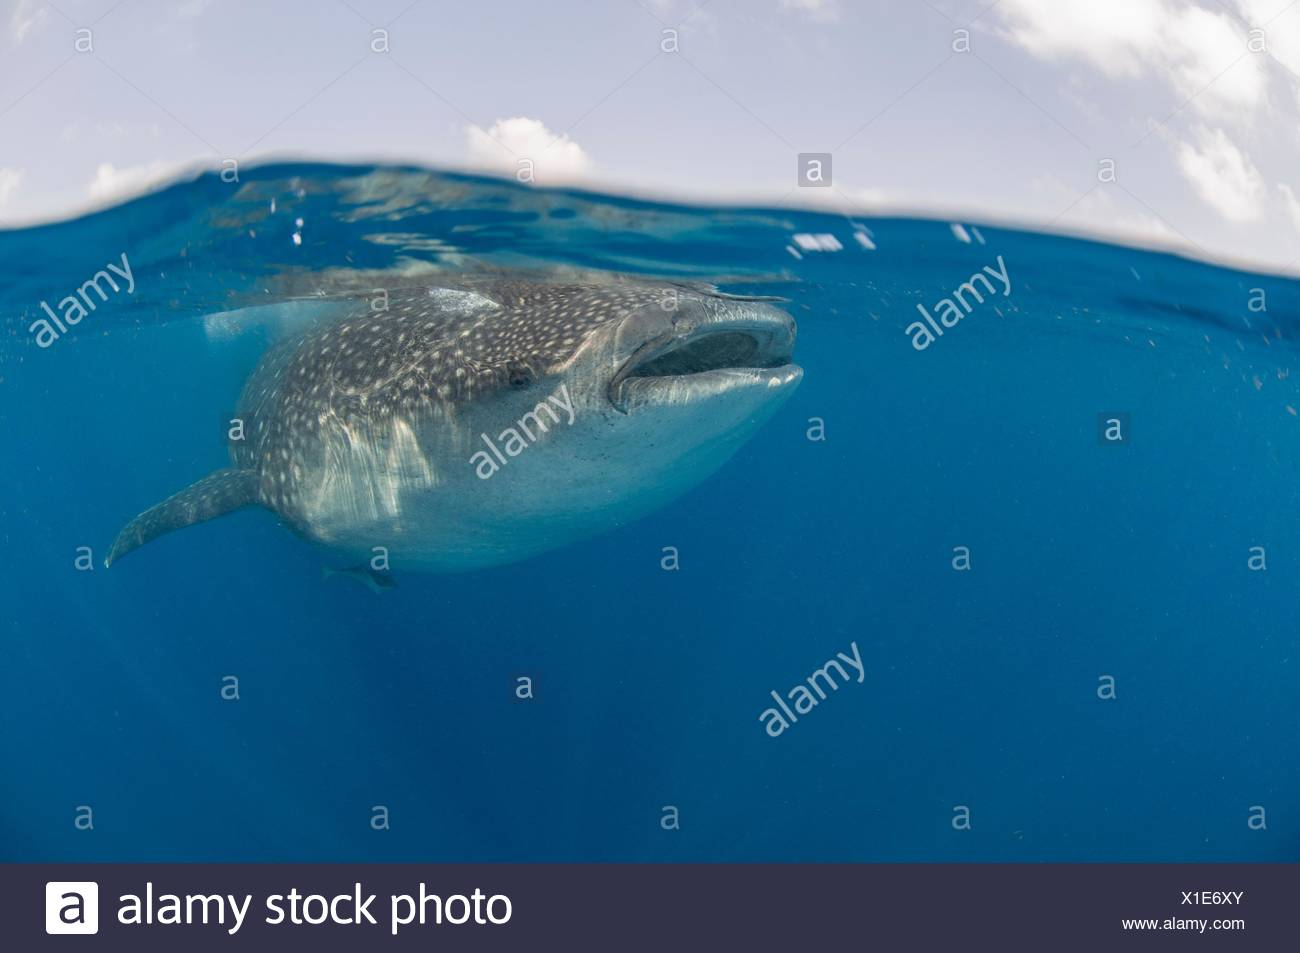 Underwater view of giant whale shark feeding on fish eggs, Contoy Island, Quintana Roo, Mexico - Stock Image